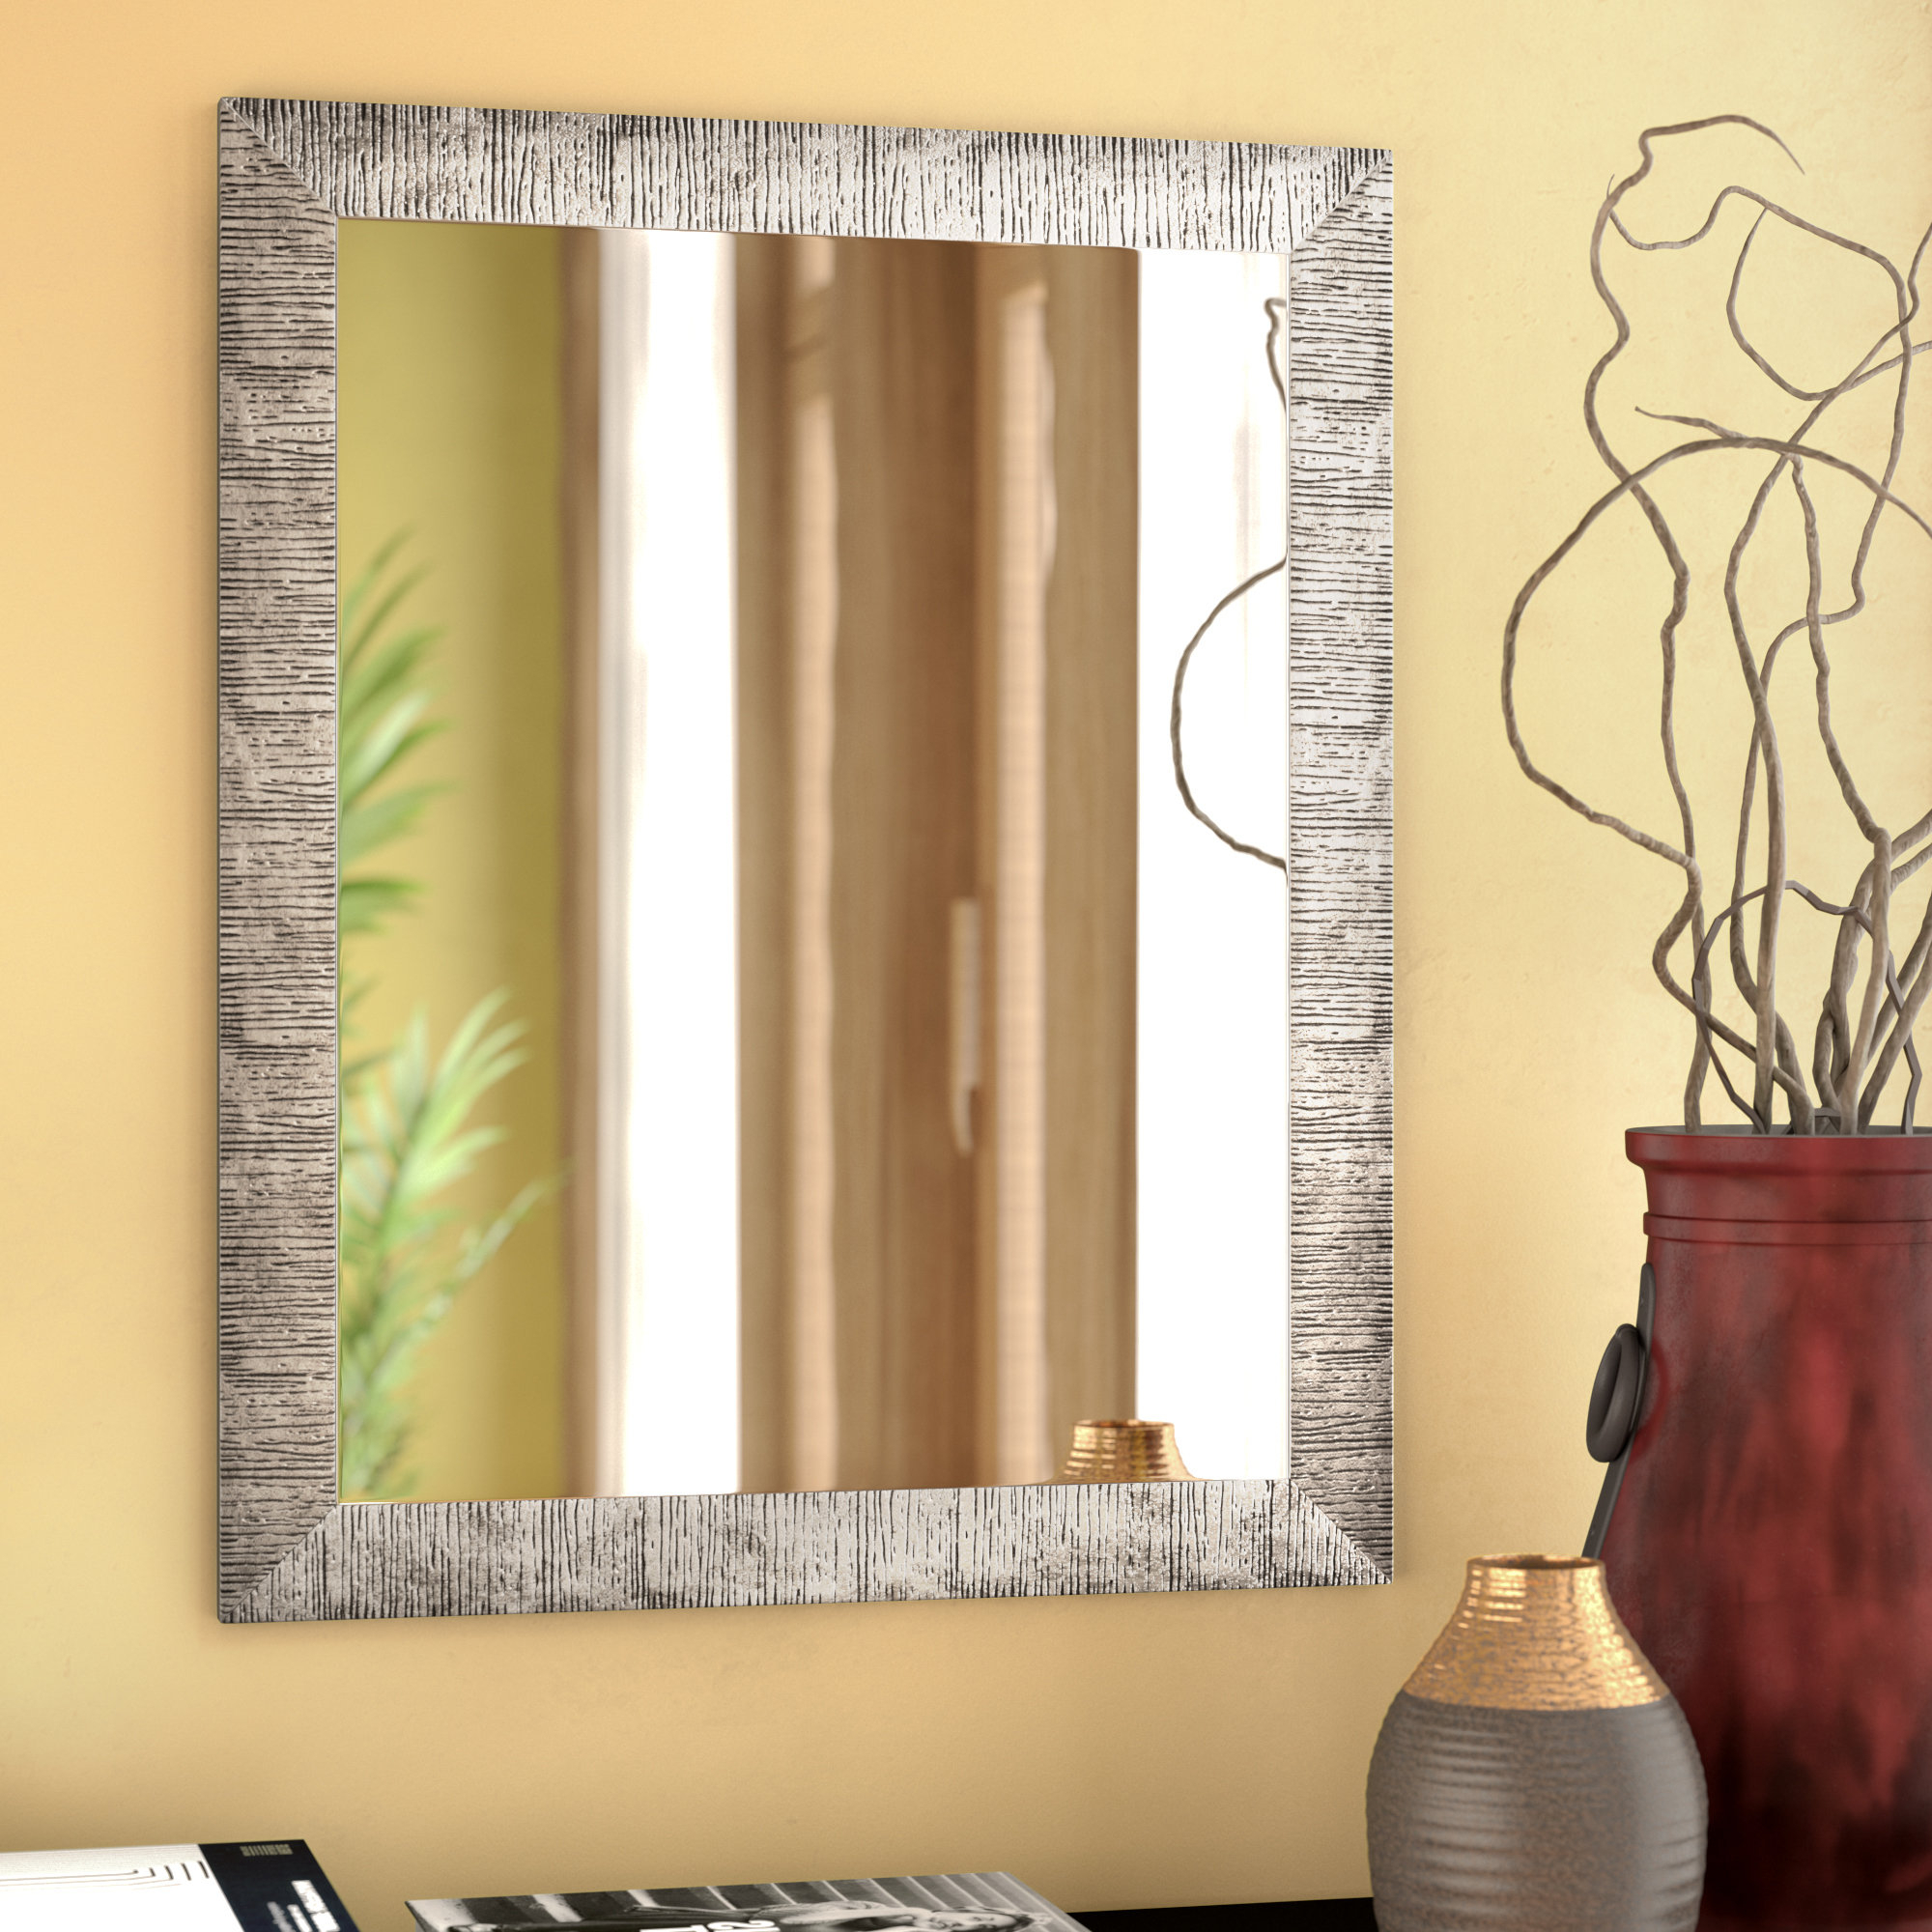 Popular Epinal Shabby Elegance Wall Mirrors Pertaining To Skeete Traditional Wall Mirror (View 9 of 20)